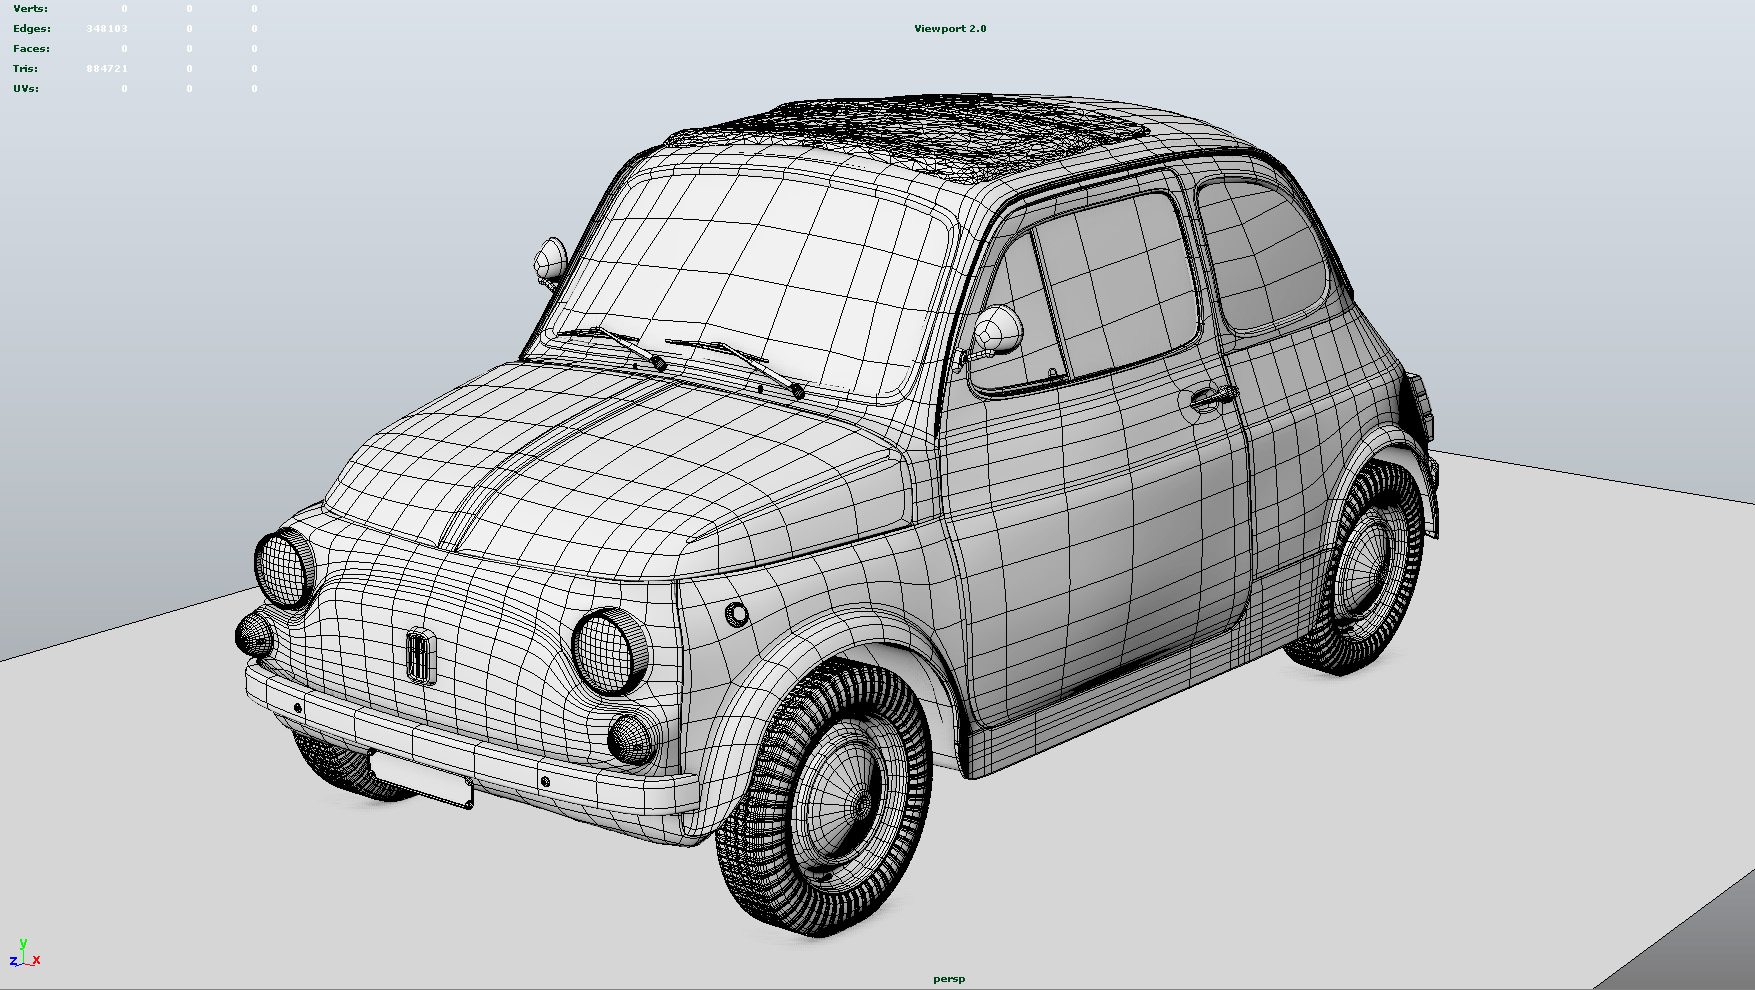 gallery category cars and bikes image fiat 500 3d model for maya wireframe lugher 3d. Black Bedroom Furniture Sets. Home Design Ideas